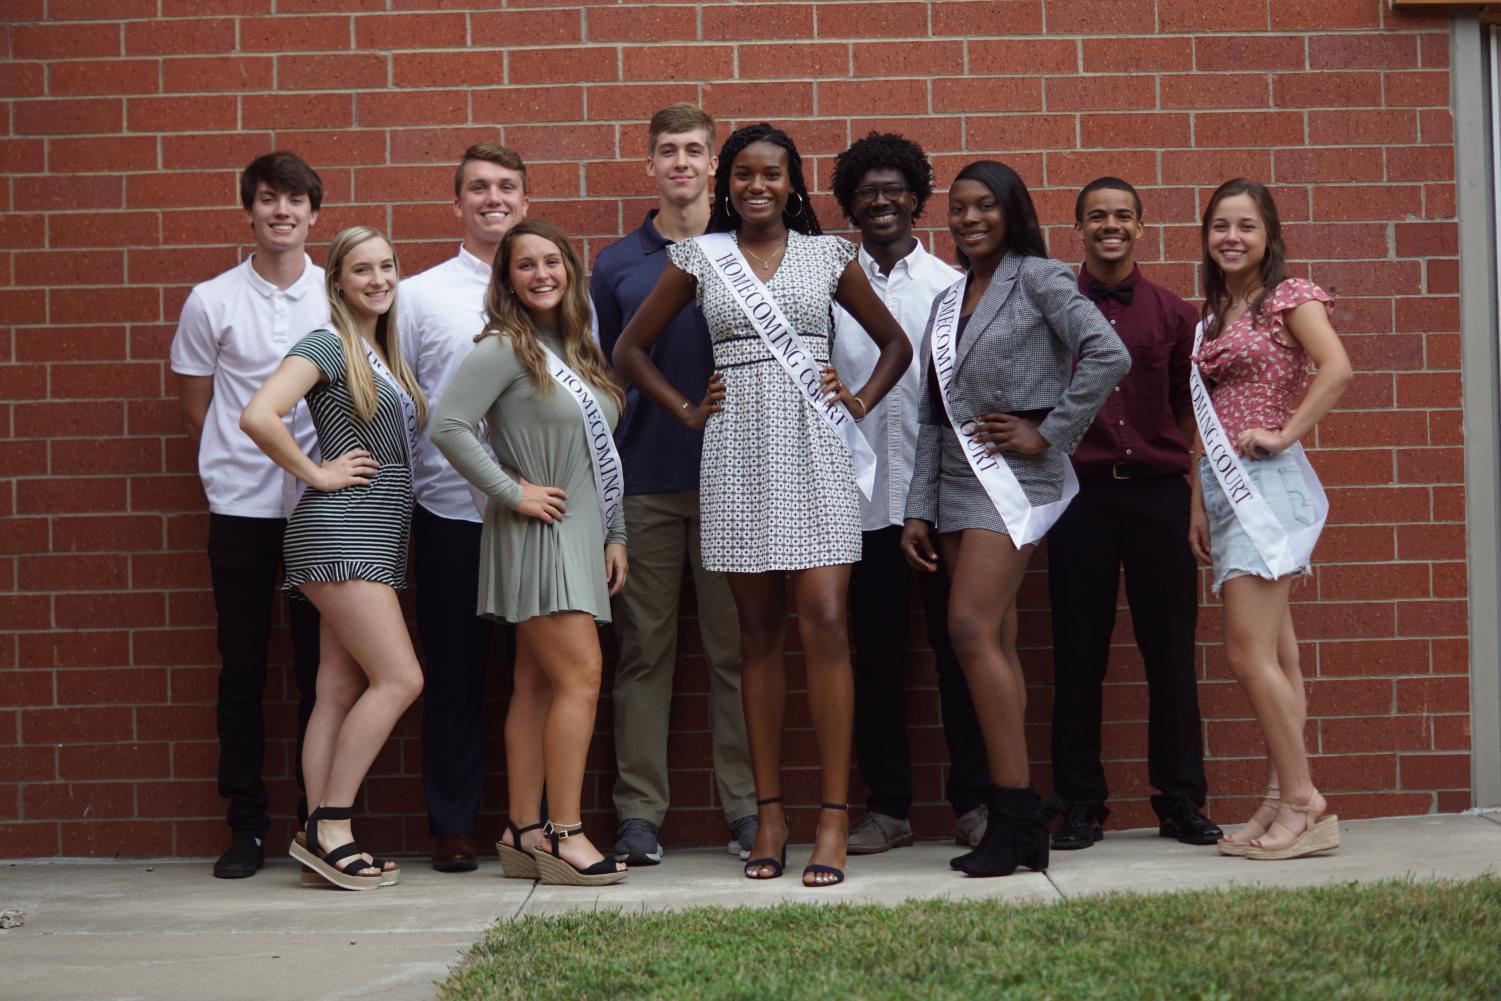 All the Homecoming 2019 Homecoming candidates pose for a group photo.